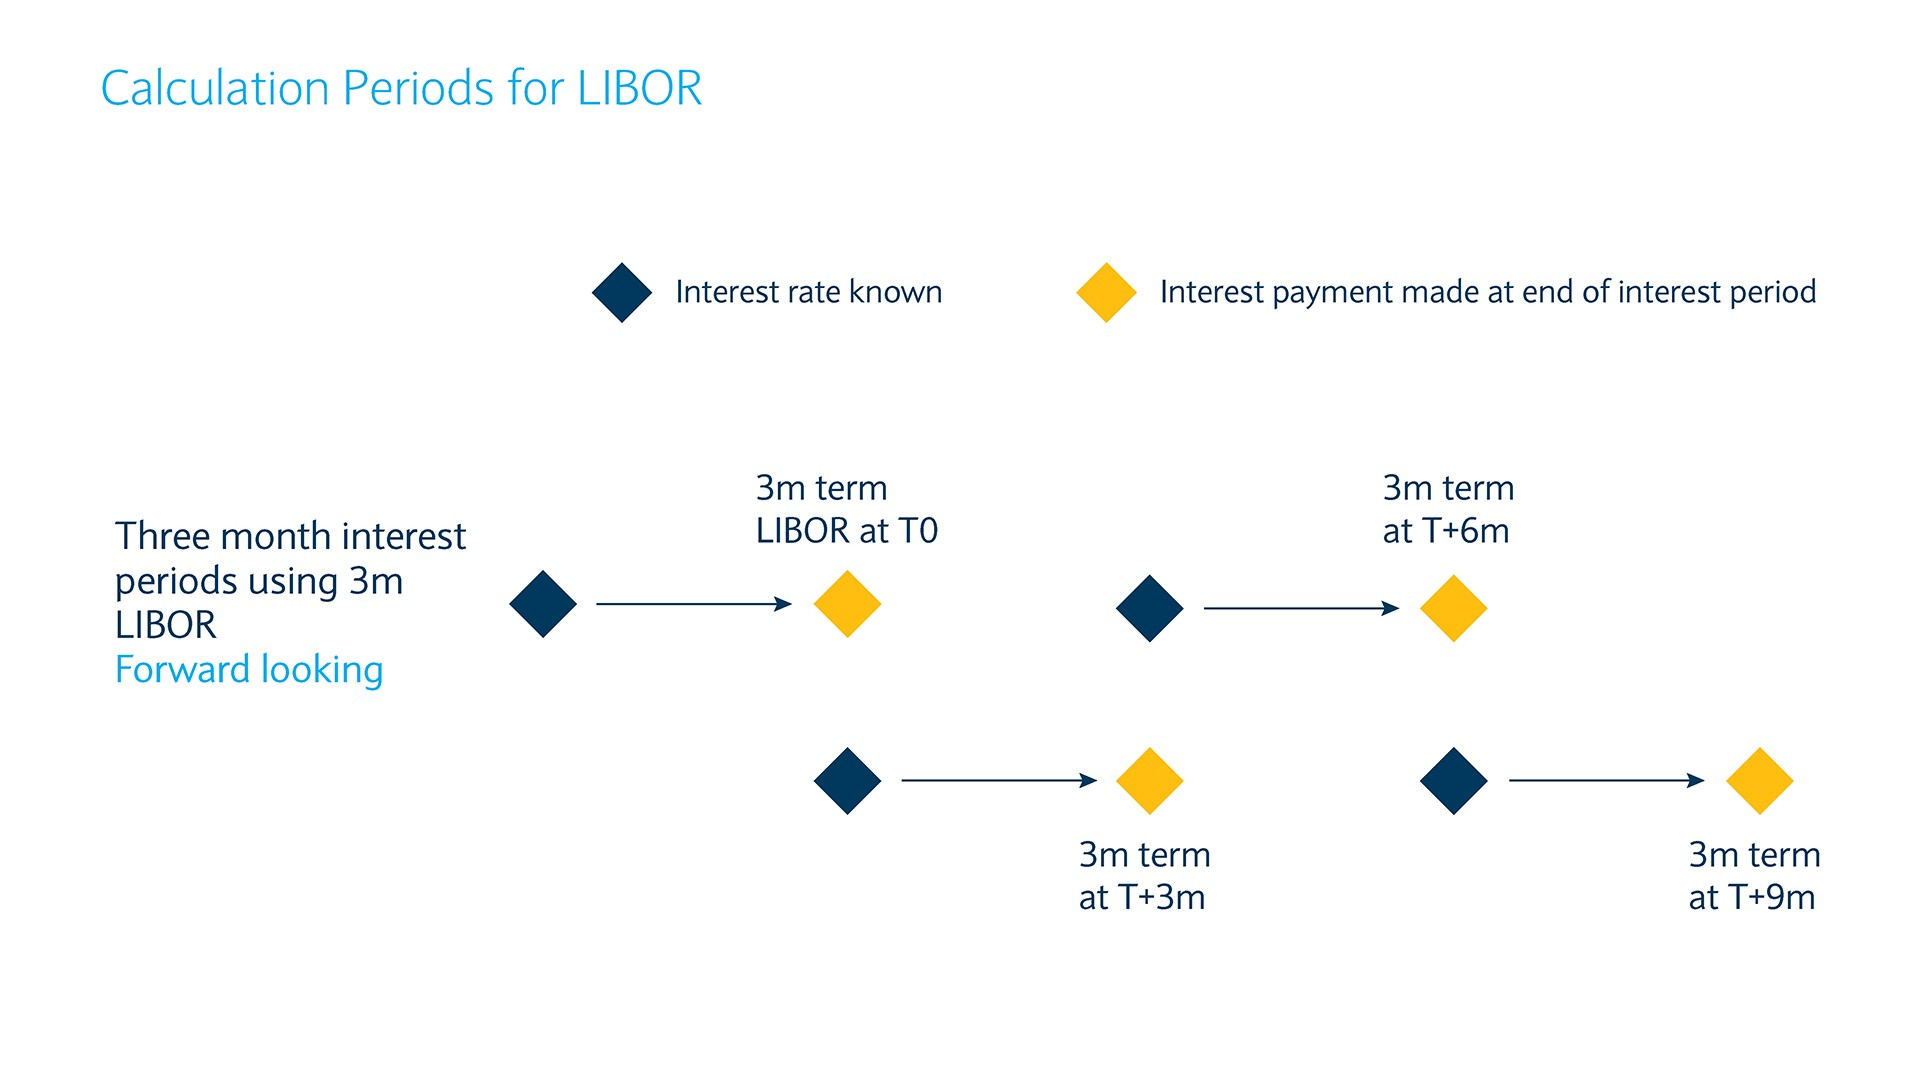 The image shows the flow of how a 3 month LIBOR interest period would work.